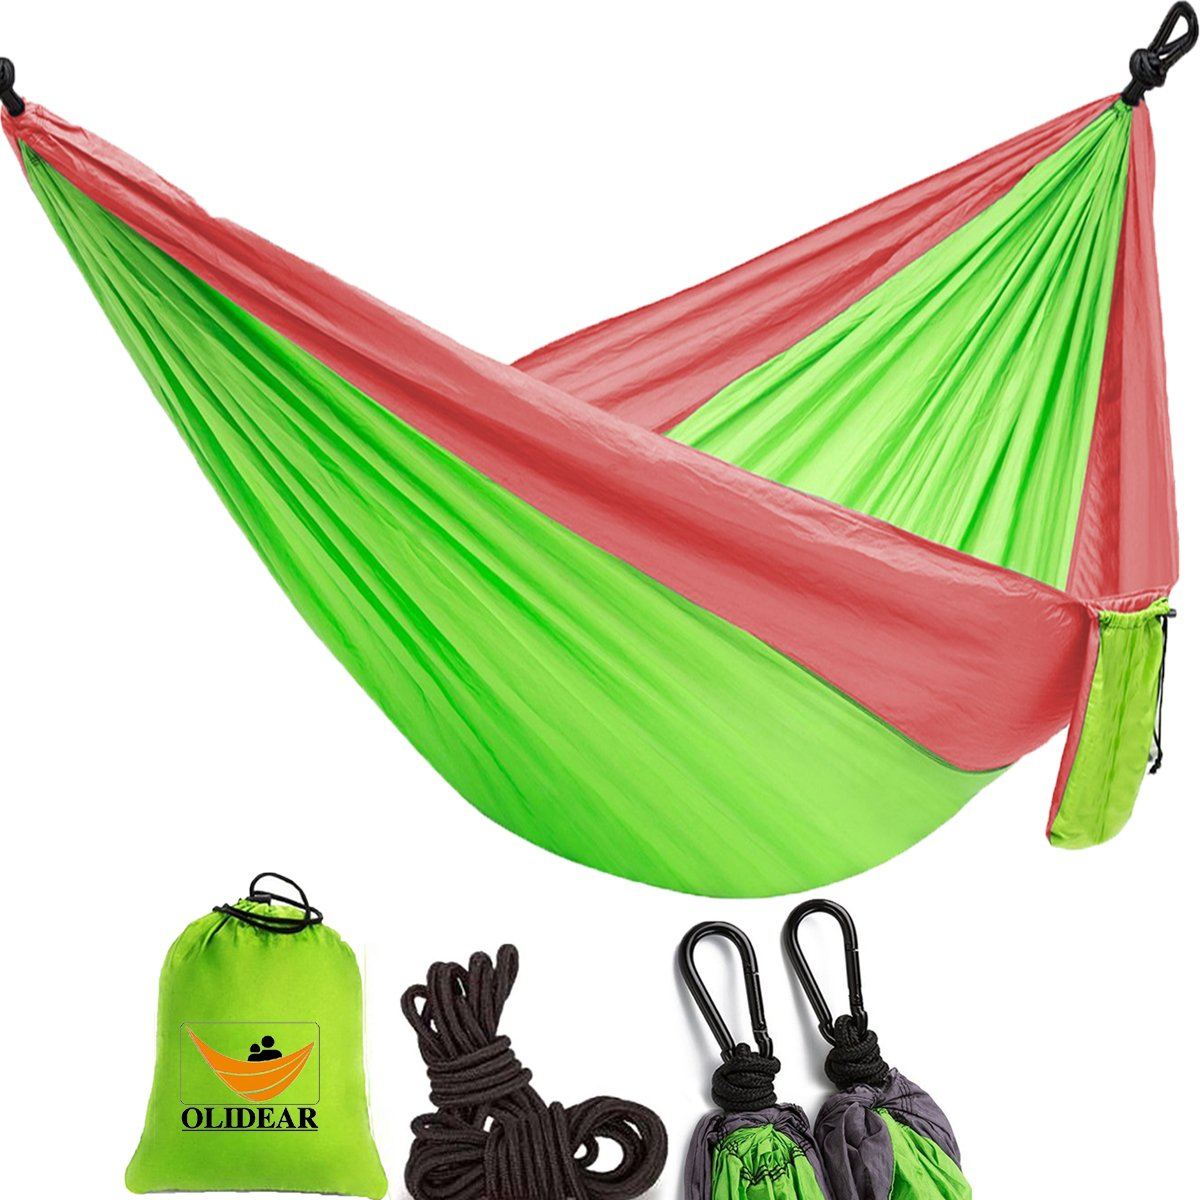 OLIDEAR Portable Parachute Nylon Hammocks Ultralight Camping Hammock Garden Hammock for Backpacking Travel Beach Yard (Red & Green, 55'' W x 105'' L) …